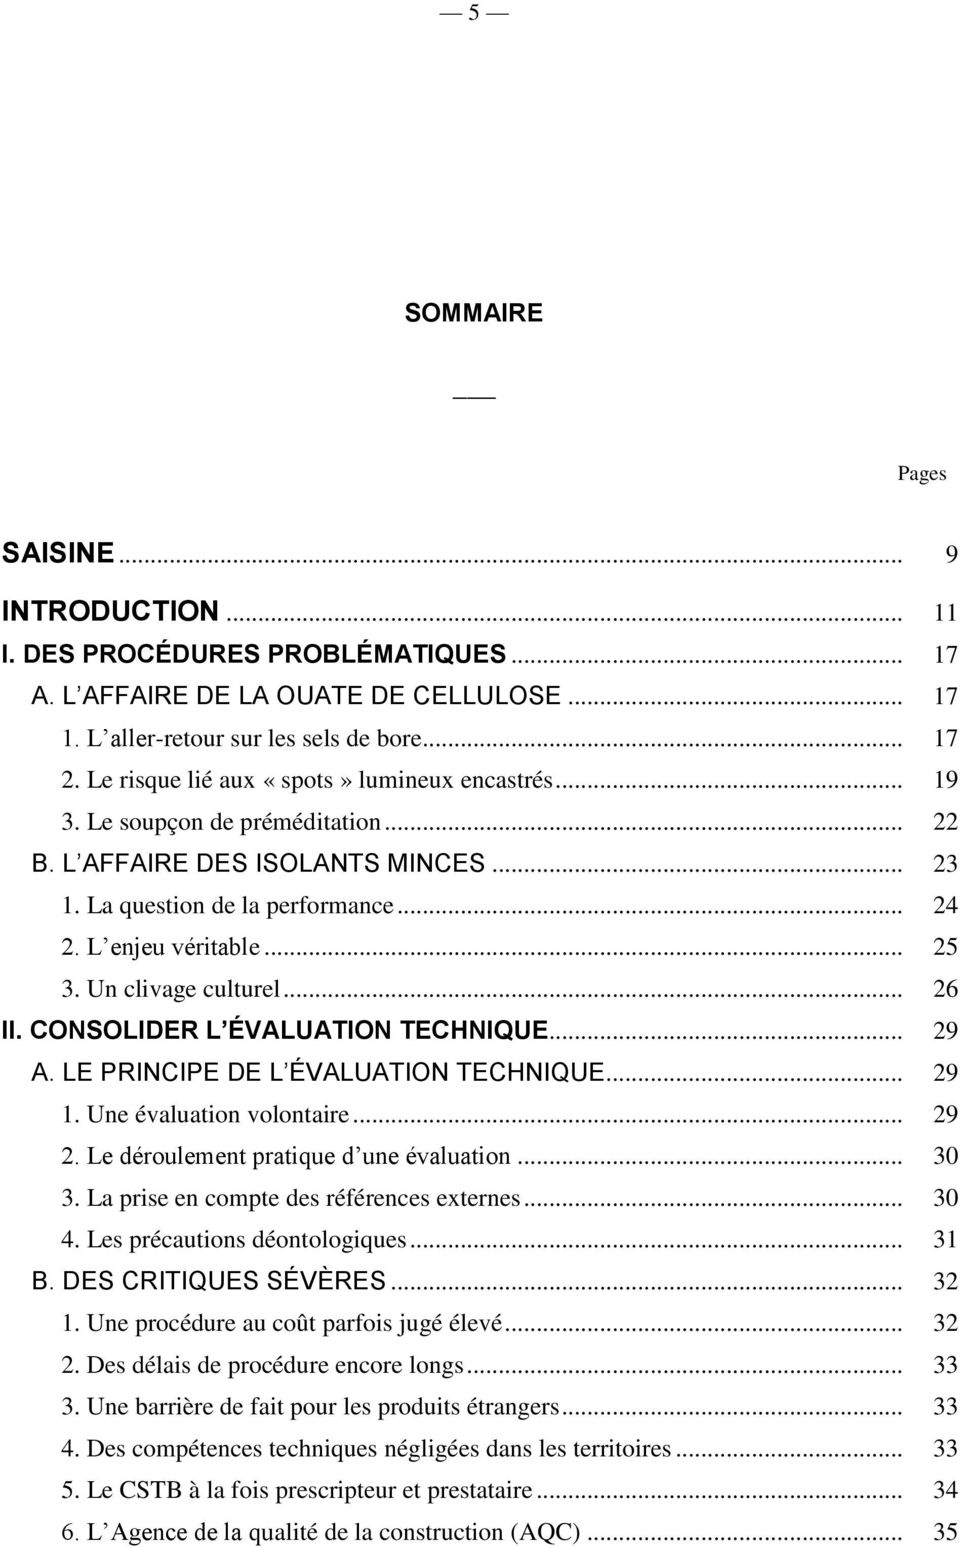 Un clivage culturel... 26 II. CONSOLIDER L ÉVALUATION TECHNIQUE... 29 A. LE PRINCIPE DE L ÉVALUATION TECHNIQUE... 29 1. Une évaluation volontaire... 29 2. Le déroulement pratique d une évaluation.